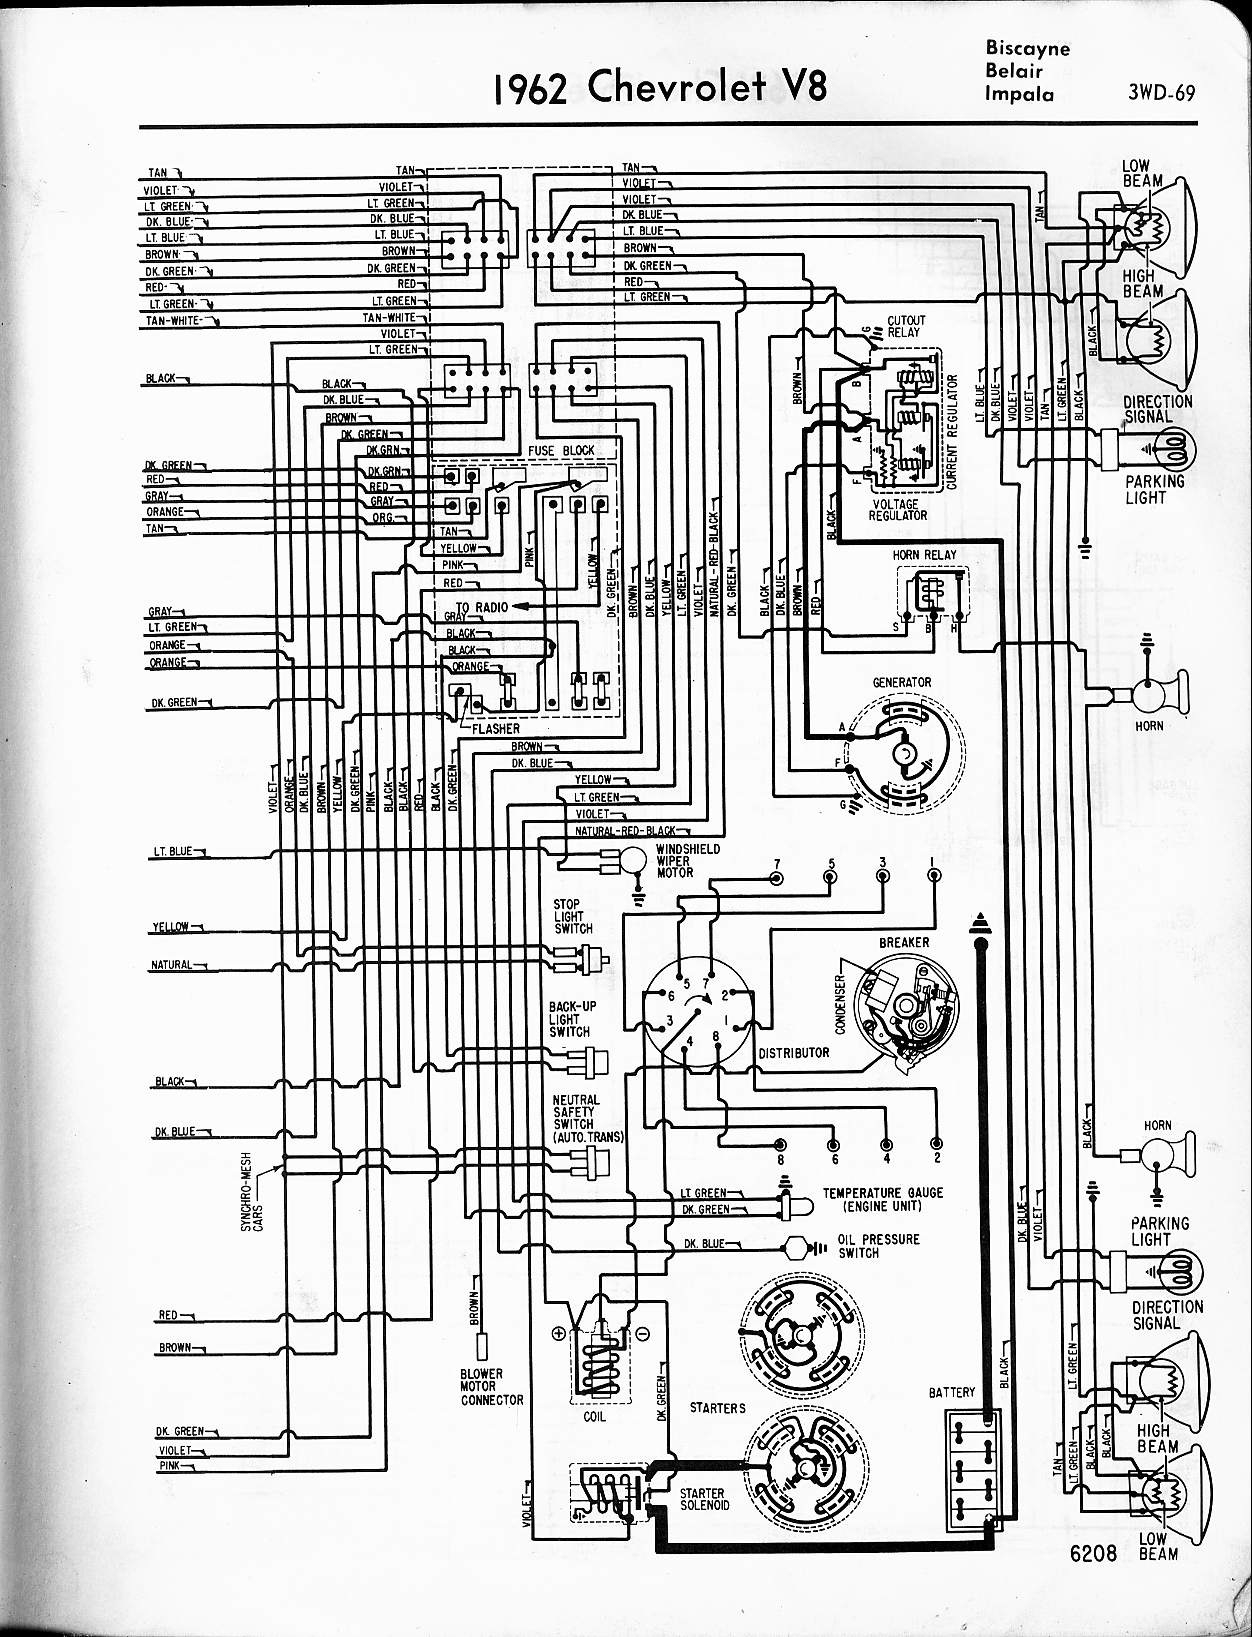 2006 chevy impala wiring diagram Collection-1962 V8 Biscayne Belair Impala right 2-l